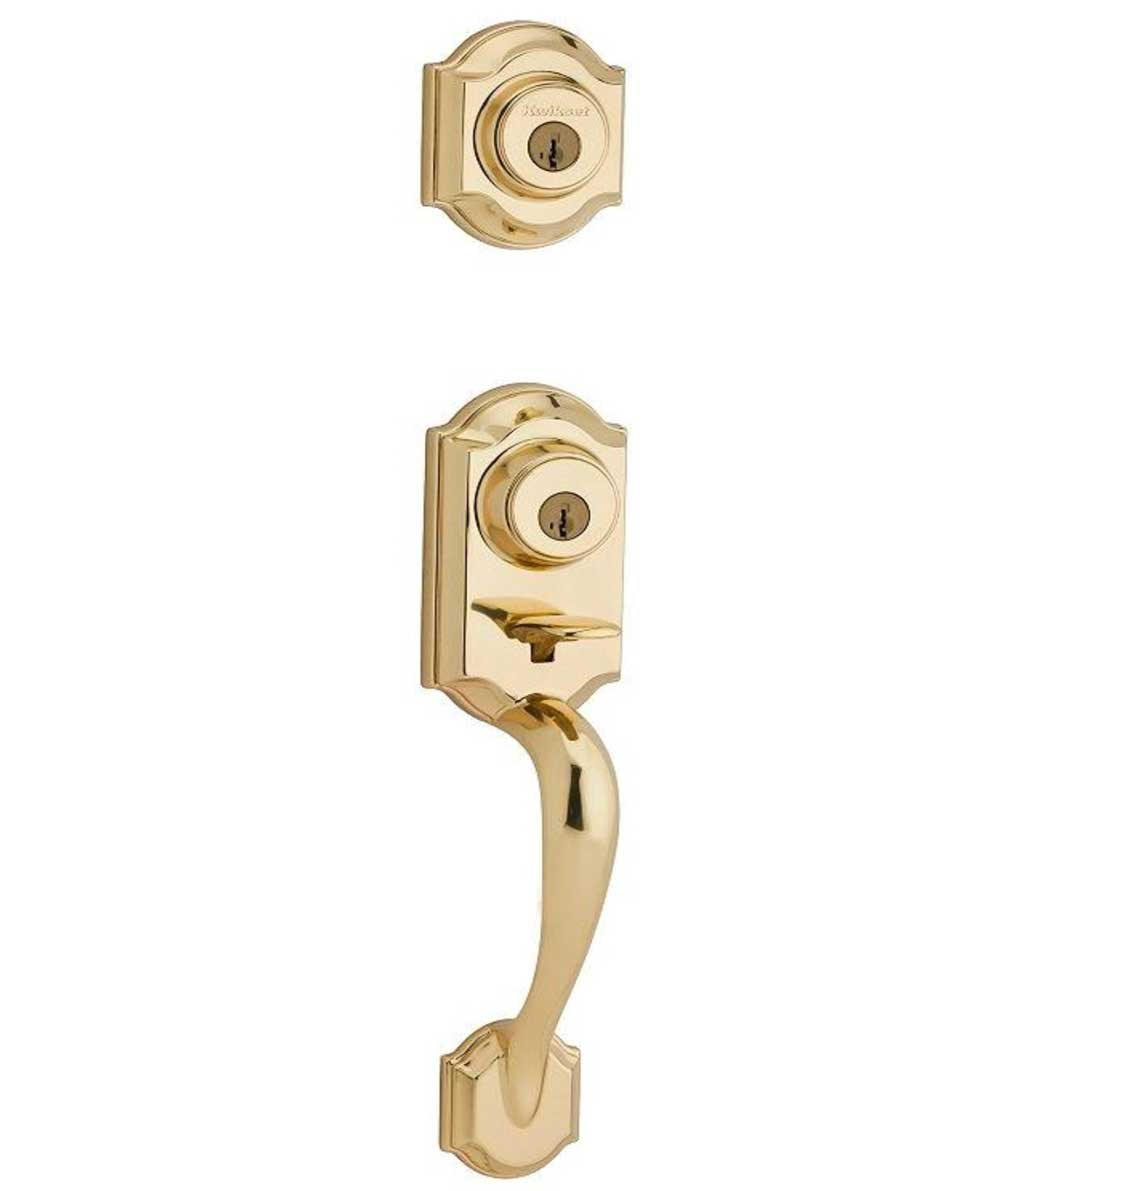 Kwikset Front Door Lock - Frog Lock Locksmiths